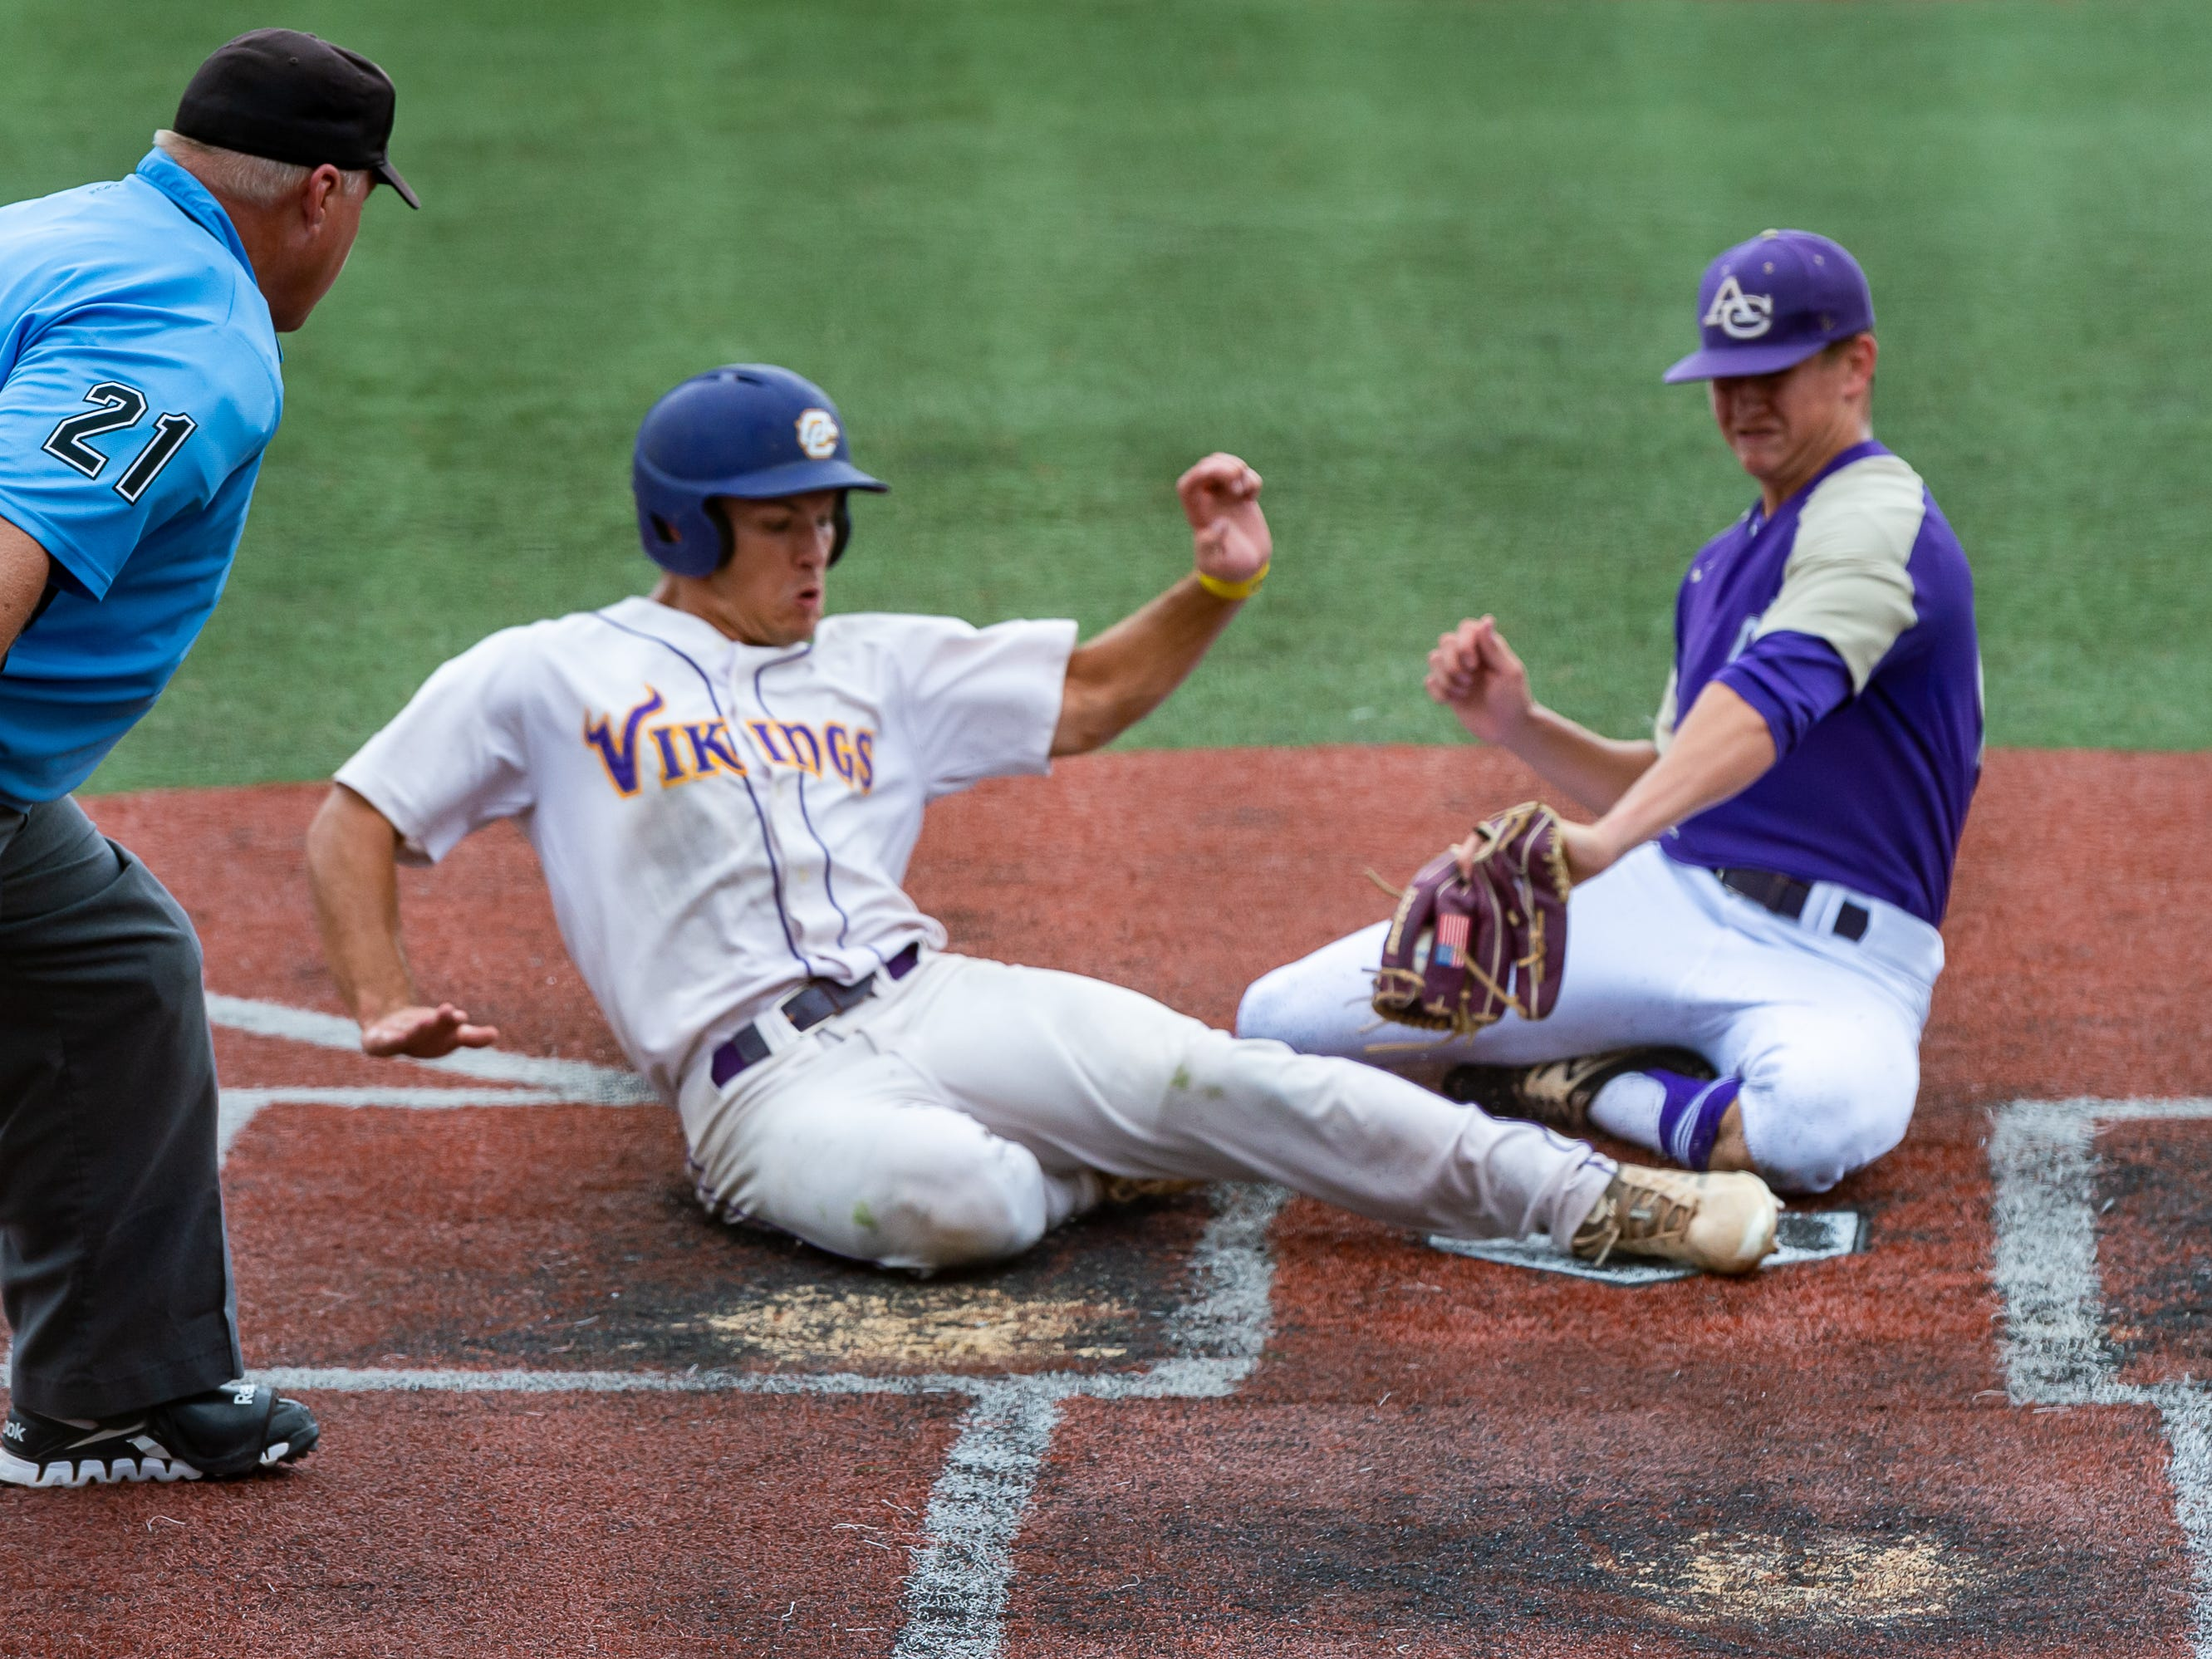 Sam Pitre slides into home to score a run as Opelousas Catholic takes on Ascension Catholic in the Div IV Semi Final game of the LHSAA State Baseball Championship. Wednesday, May 8, 2019.